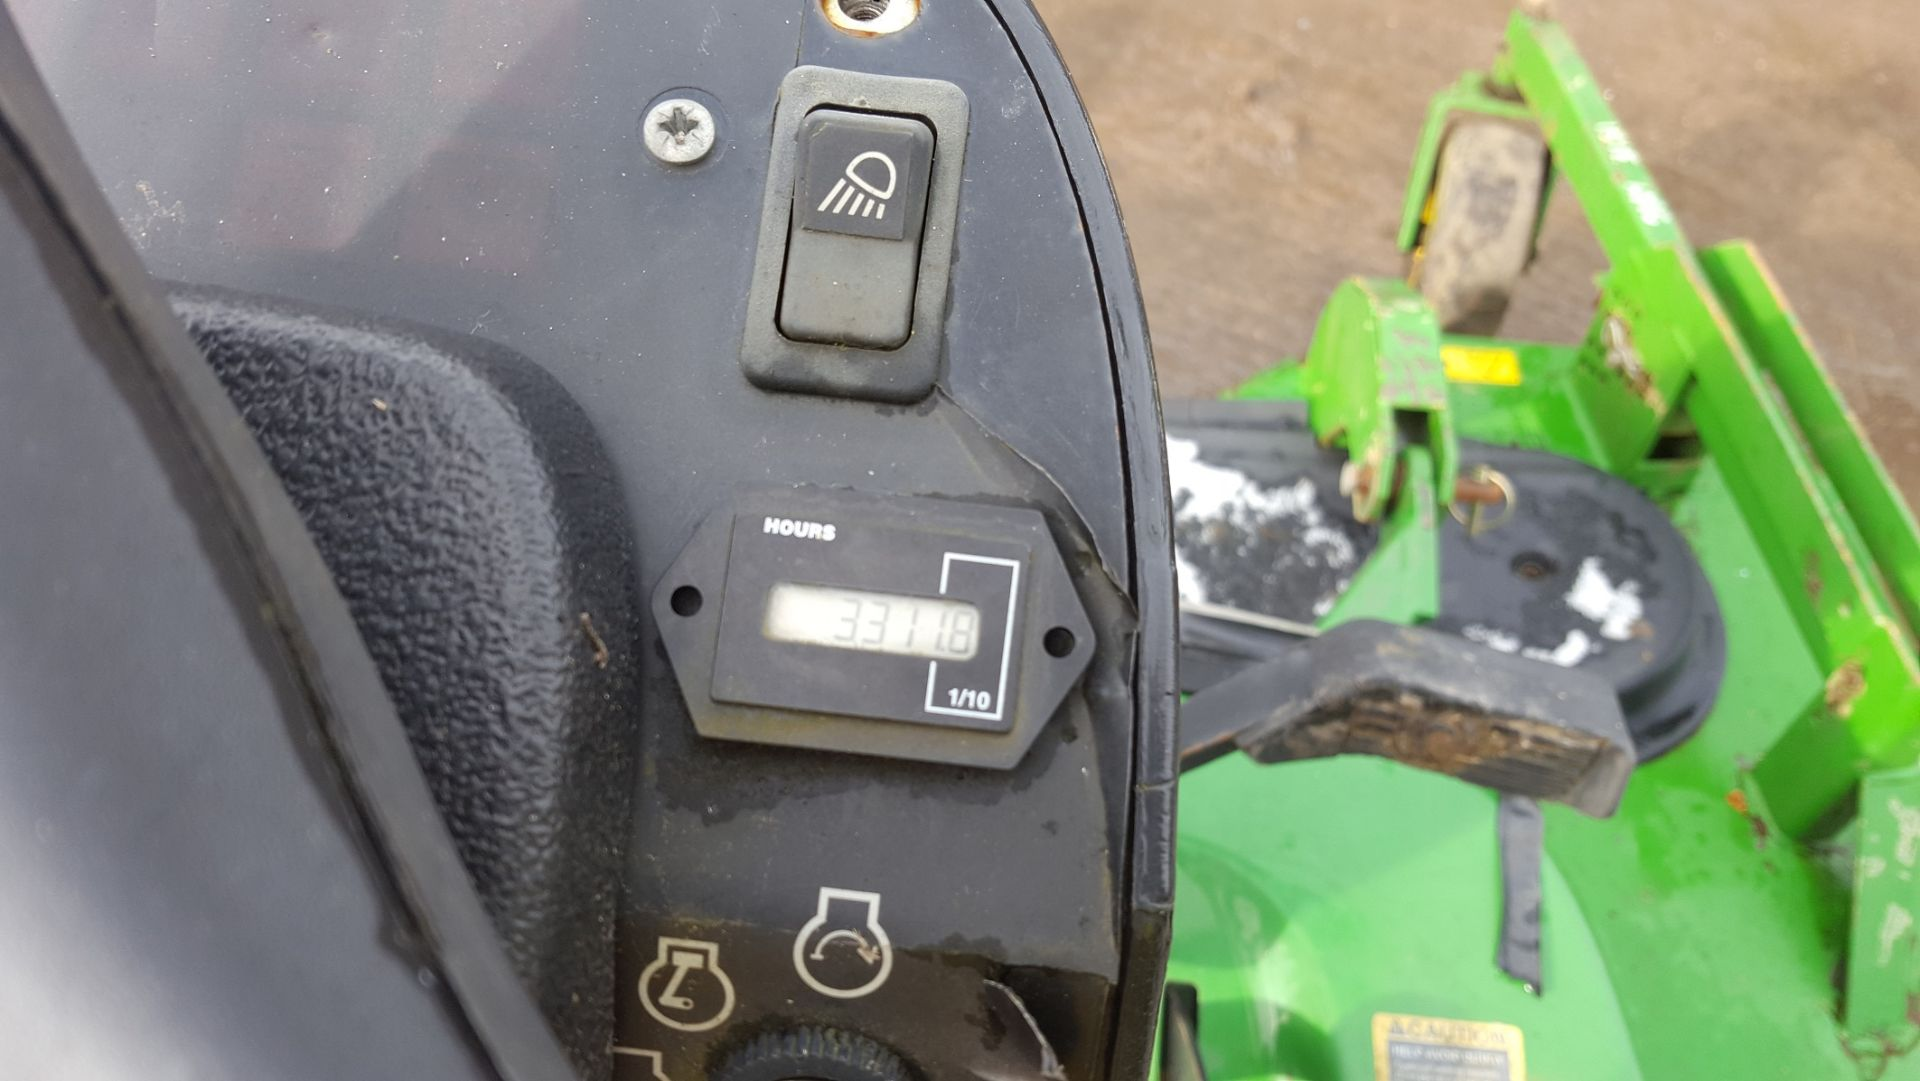 2006 JOHN DEERE 1545 RIDE ON LAWN MOWER, EX GATESHEAD COUNCIL *PLUS VAT* - Image 5 of 8